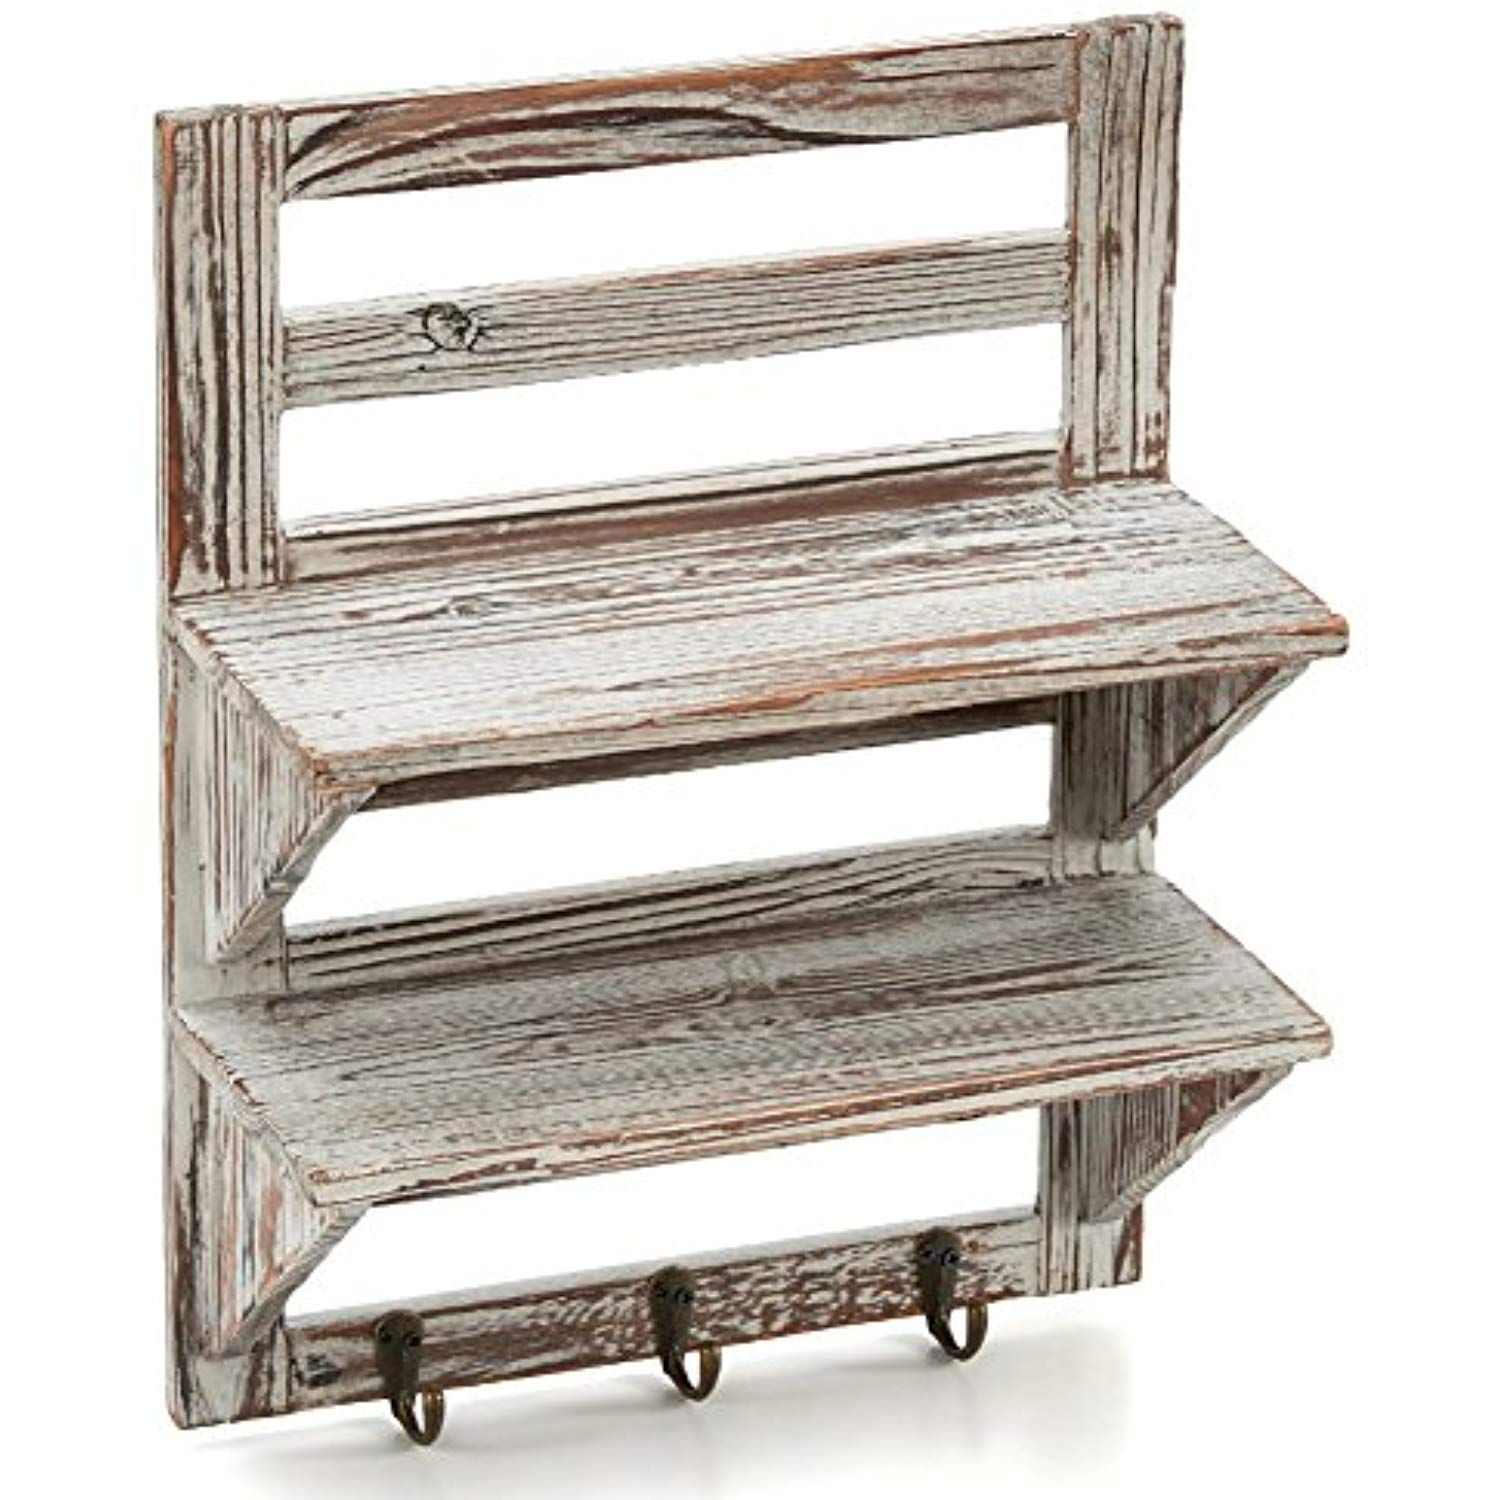 Rustic Torched Wood Wall Mounted Entryway Organizer Display Rack w// 4 Key Hooks